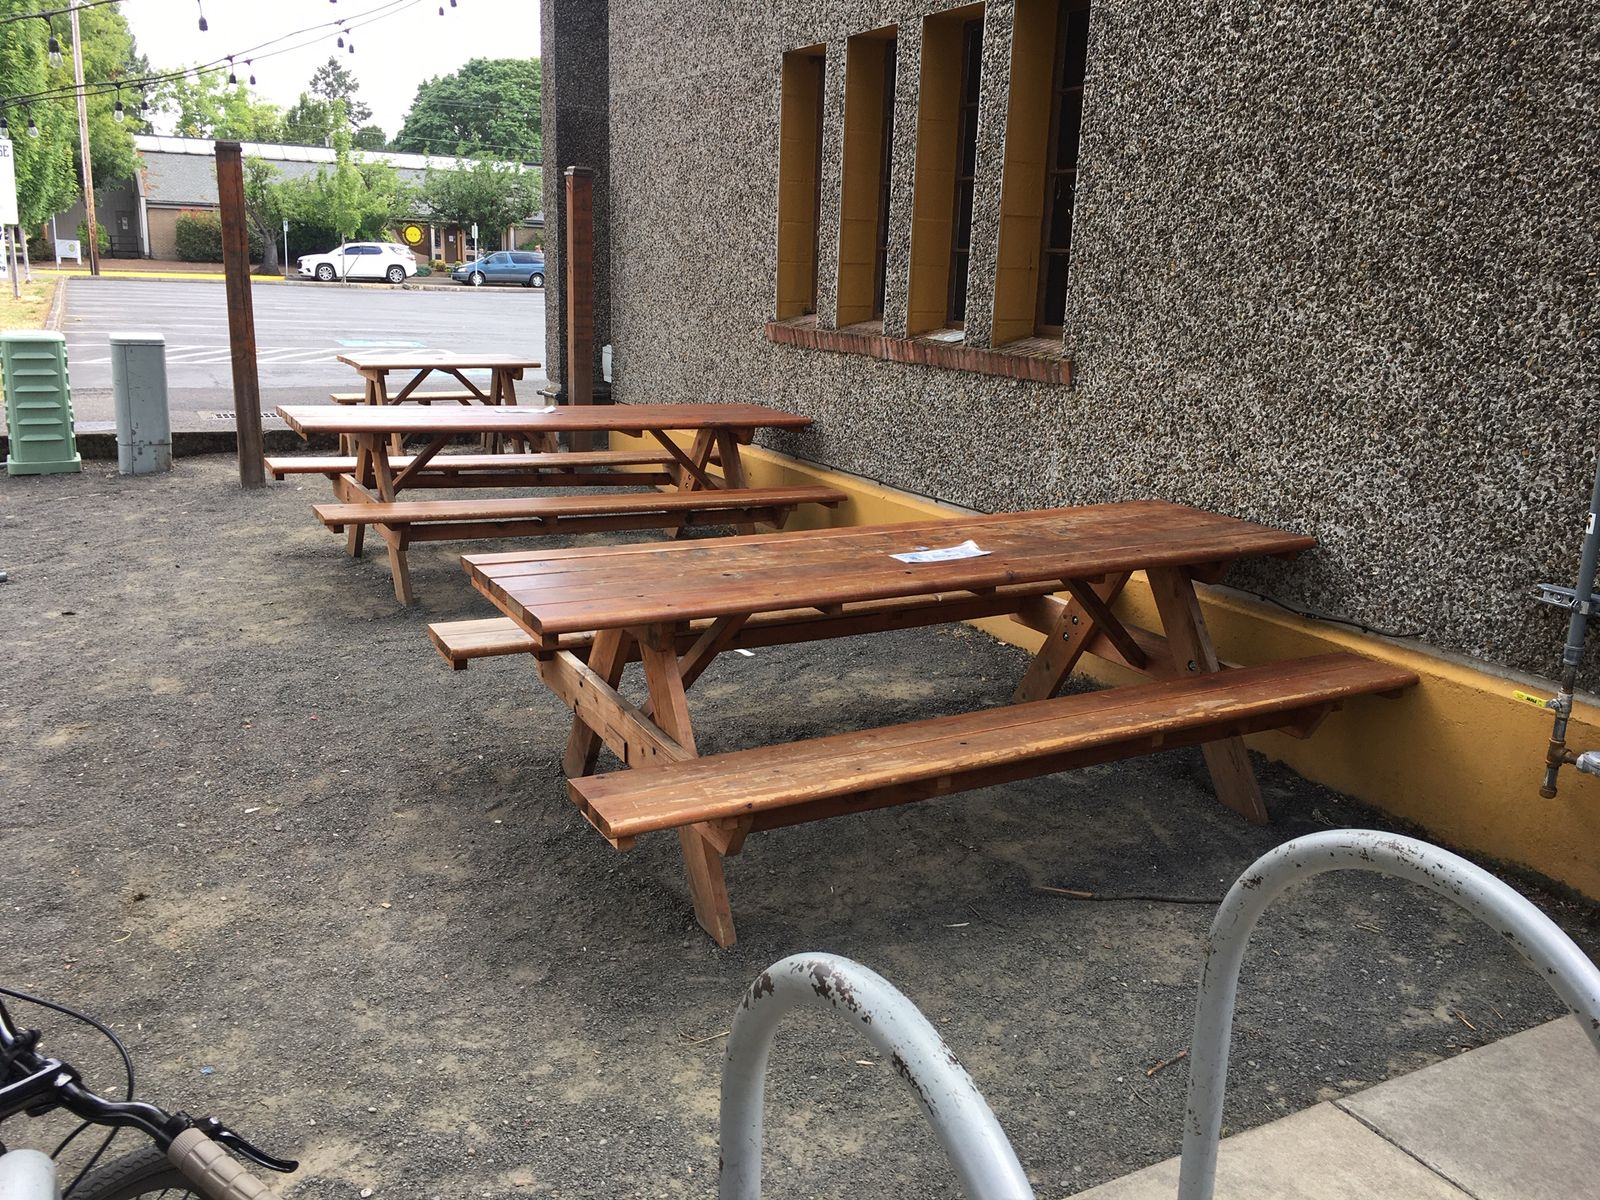 Restaurants in Springfield look to expand outdoor seating options amid COVID requirements